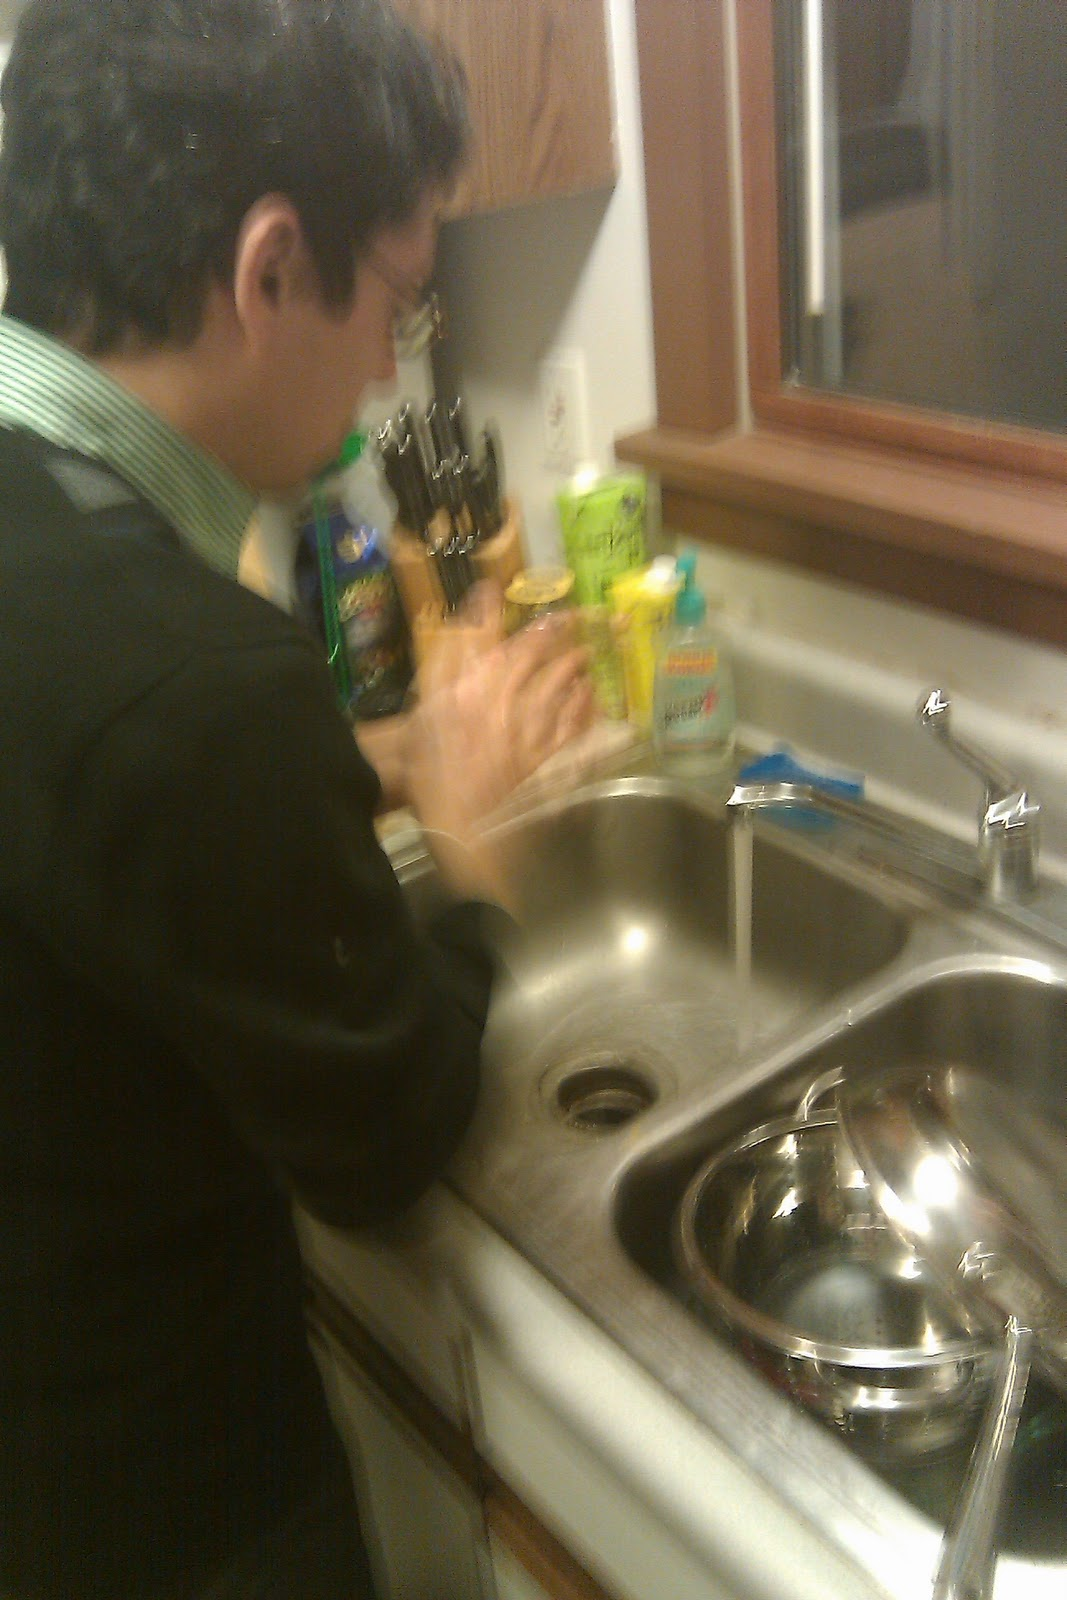 Homo actionion in the kitchen